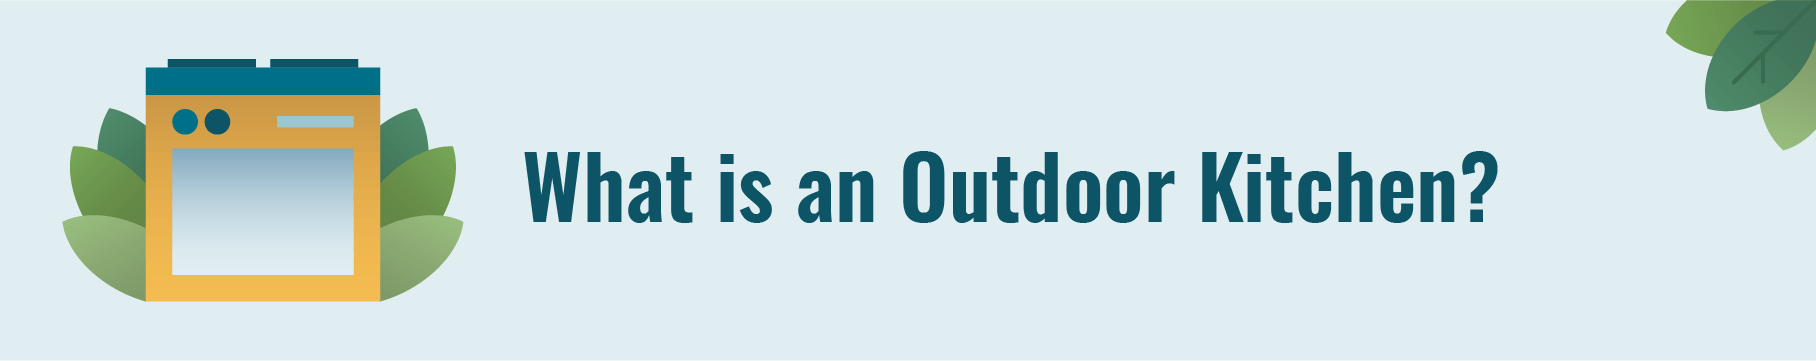 What is an outdoor kitchen?